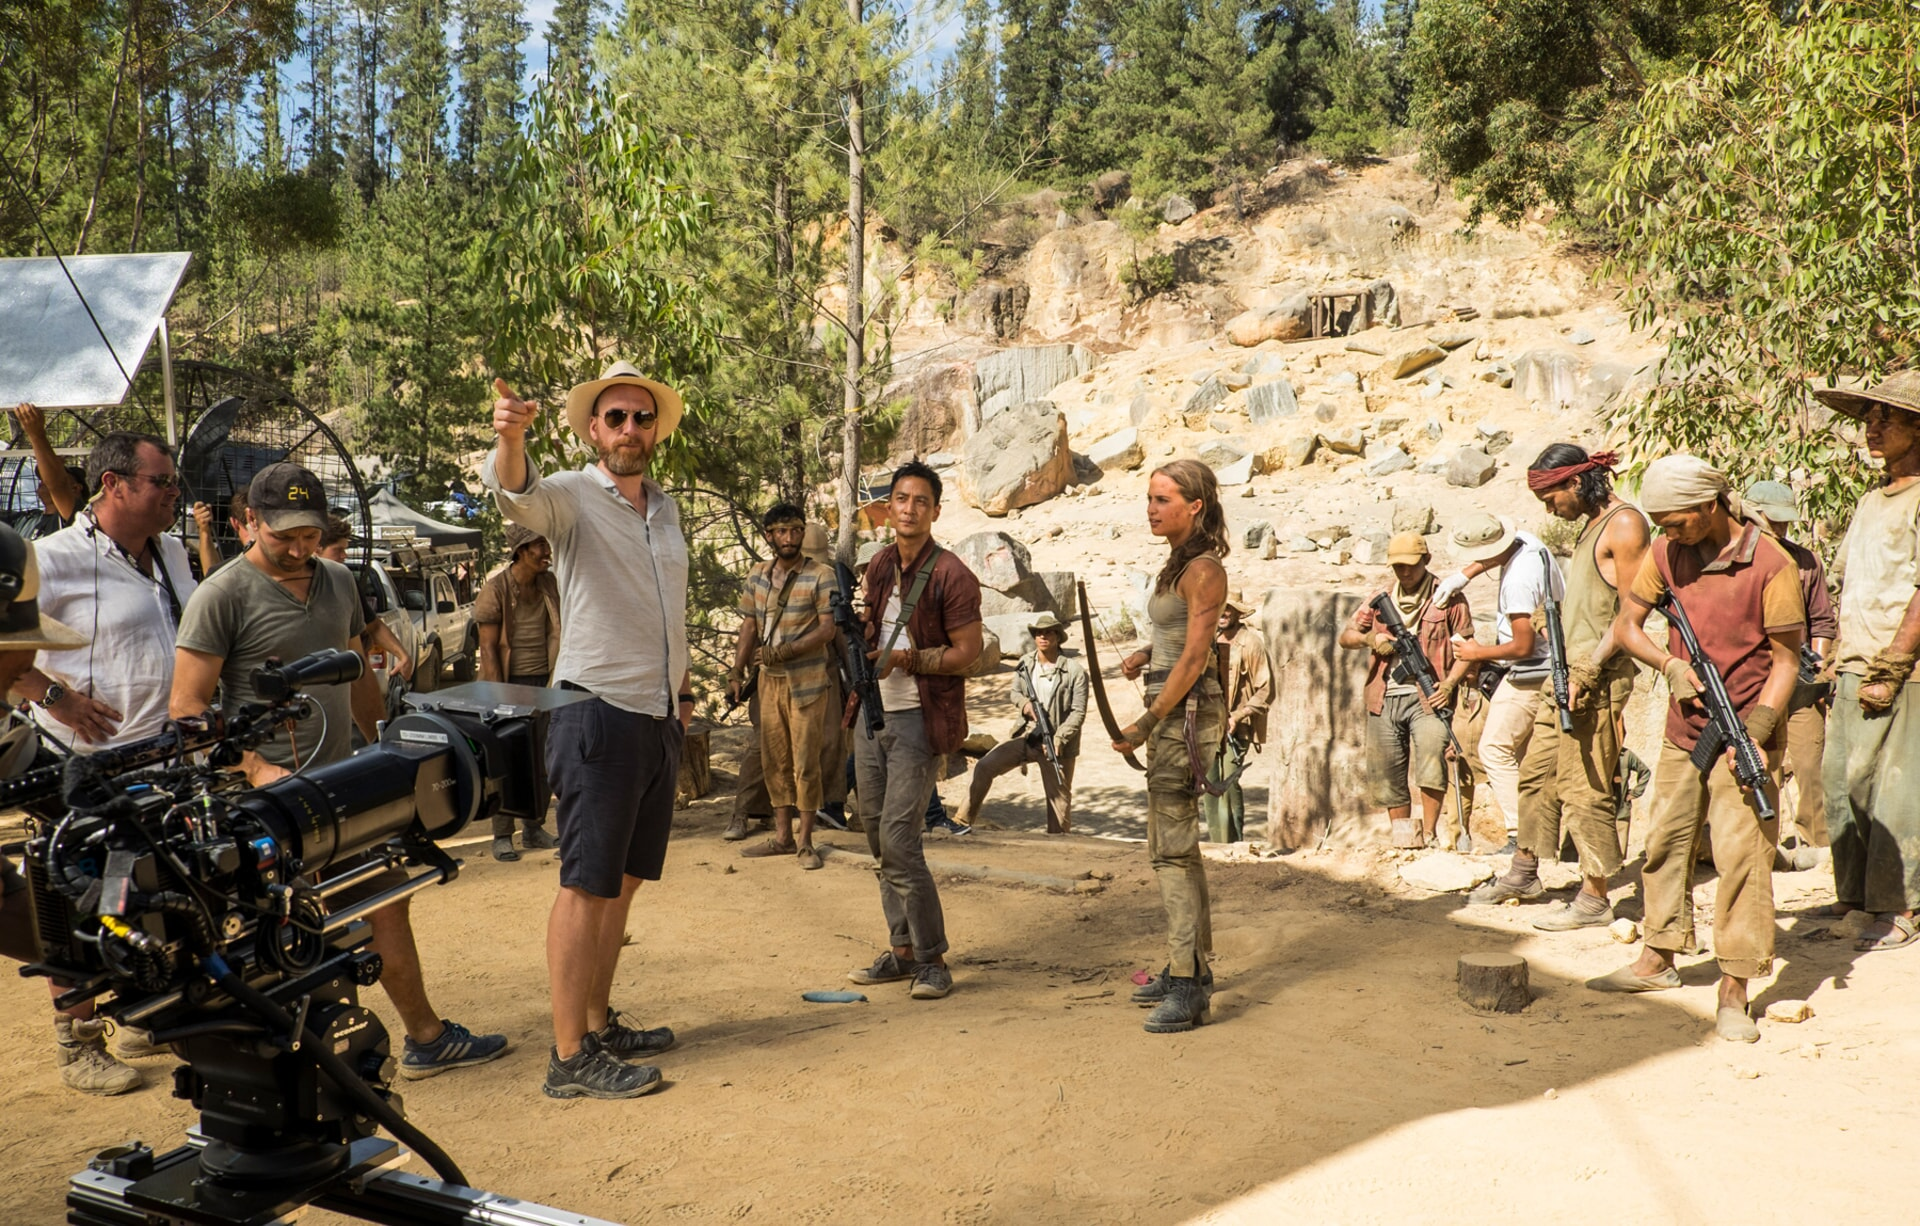 """(Center L-R) Director ROAR UTHAUG, DANIEL WU and ALICIA VIKANDER on the set of Warner Bros. Pictures' and Metro-Goldwyn-Mayer Pictures' action adventure """"TOMB RAIDER,"""" a Warner Bros. Pictures release."""